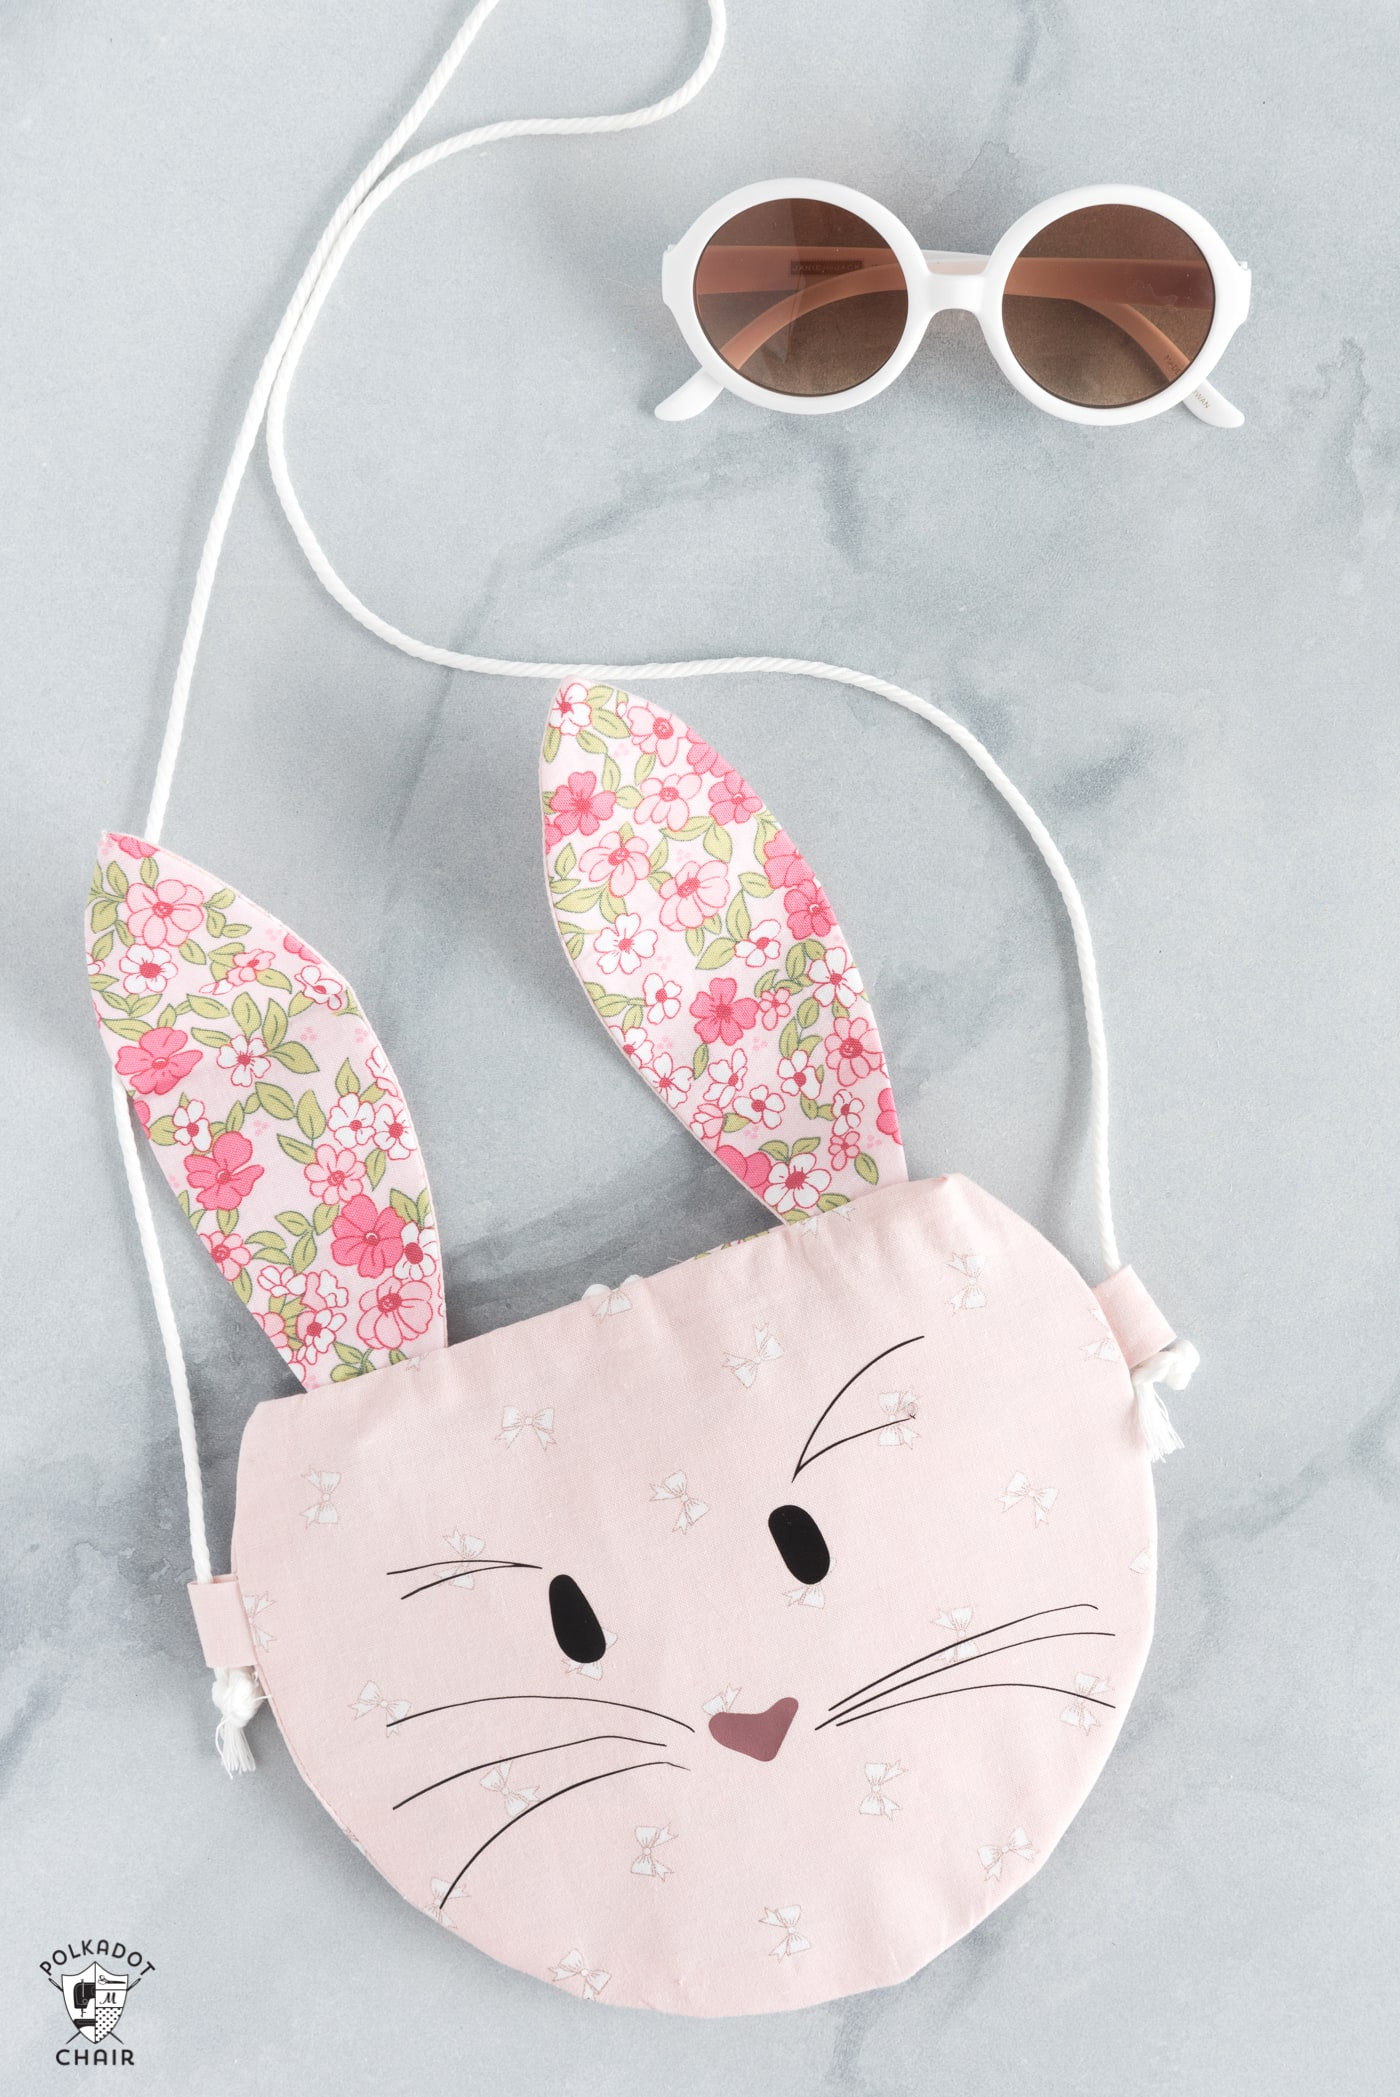 How to make a bunny purse, a free bunny sewing pattern for the Cricut Maker - cute kids purse ideas #Cricut #CricutMade #CricutMaker #BunnyPurse #BunnySewingPattern